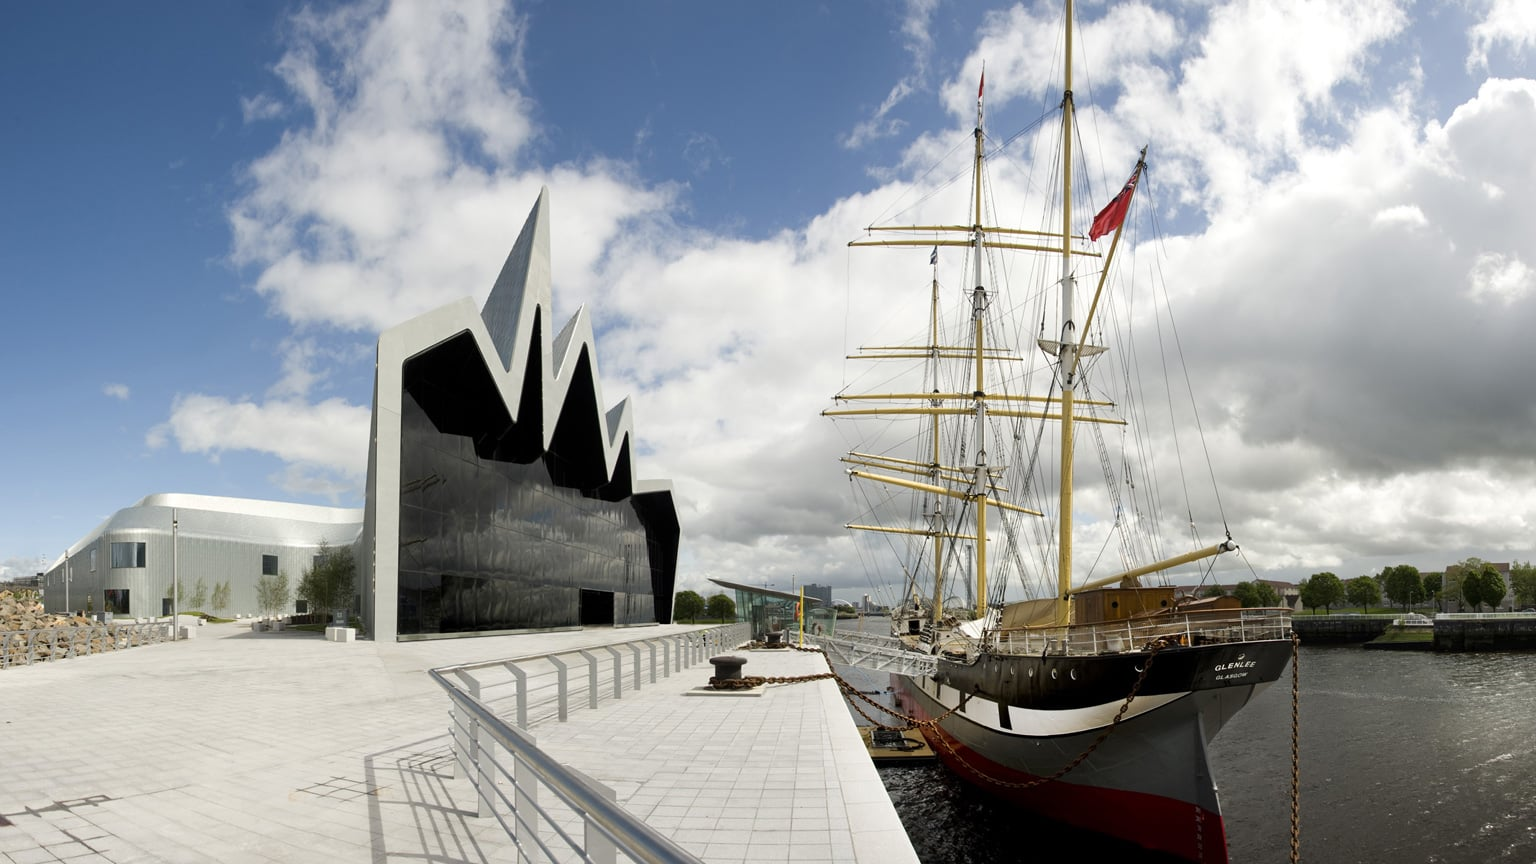 Riverside Museum and Glenlee Tall Ship -